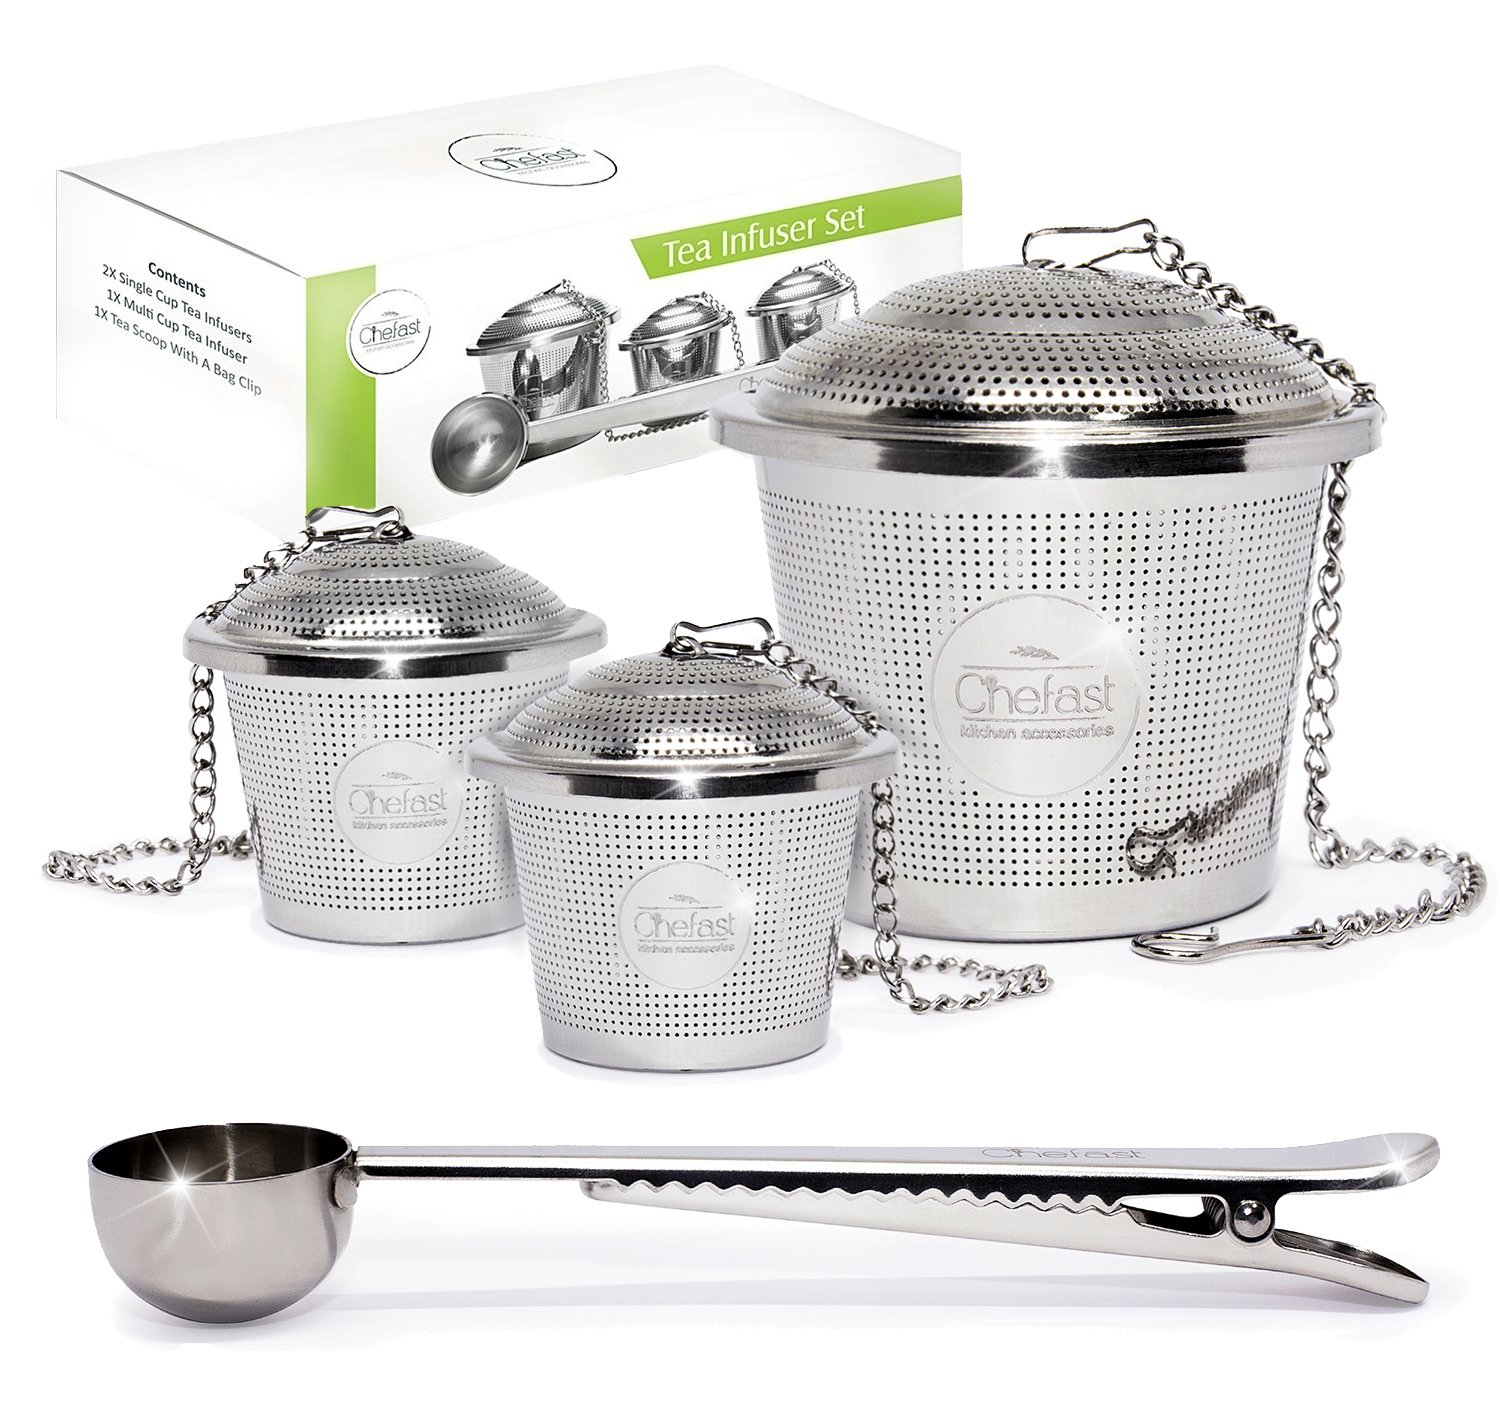 Tea Infuser Set by Chefast (2+1 Pack) - Combo Kit of 1 Large and 2 Single Cup Infusers, Plus Metal Scoop with Clip - Reusable Stainless Steel Strainers and Steepers for Loose Leaf Teas by Chefast